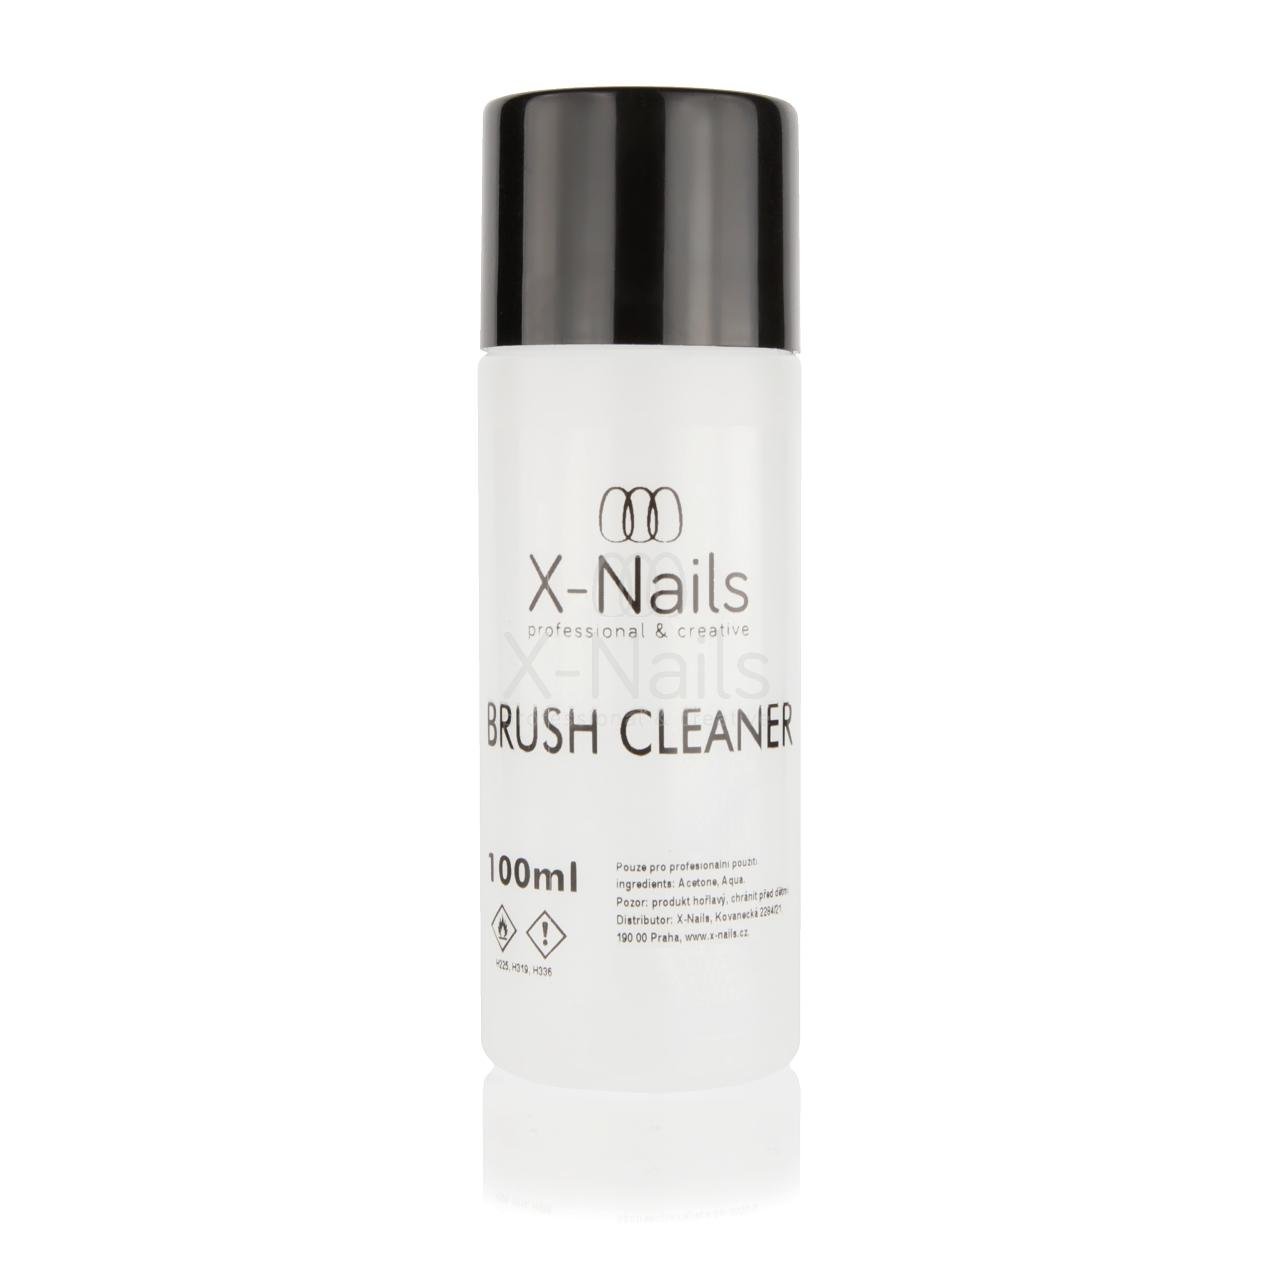 X-NAILS Brush cleaner, 100 ml - Čistič štětců